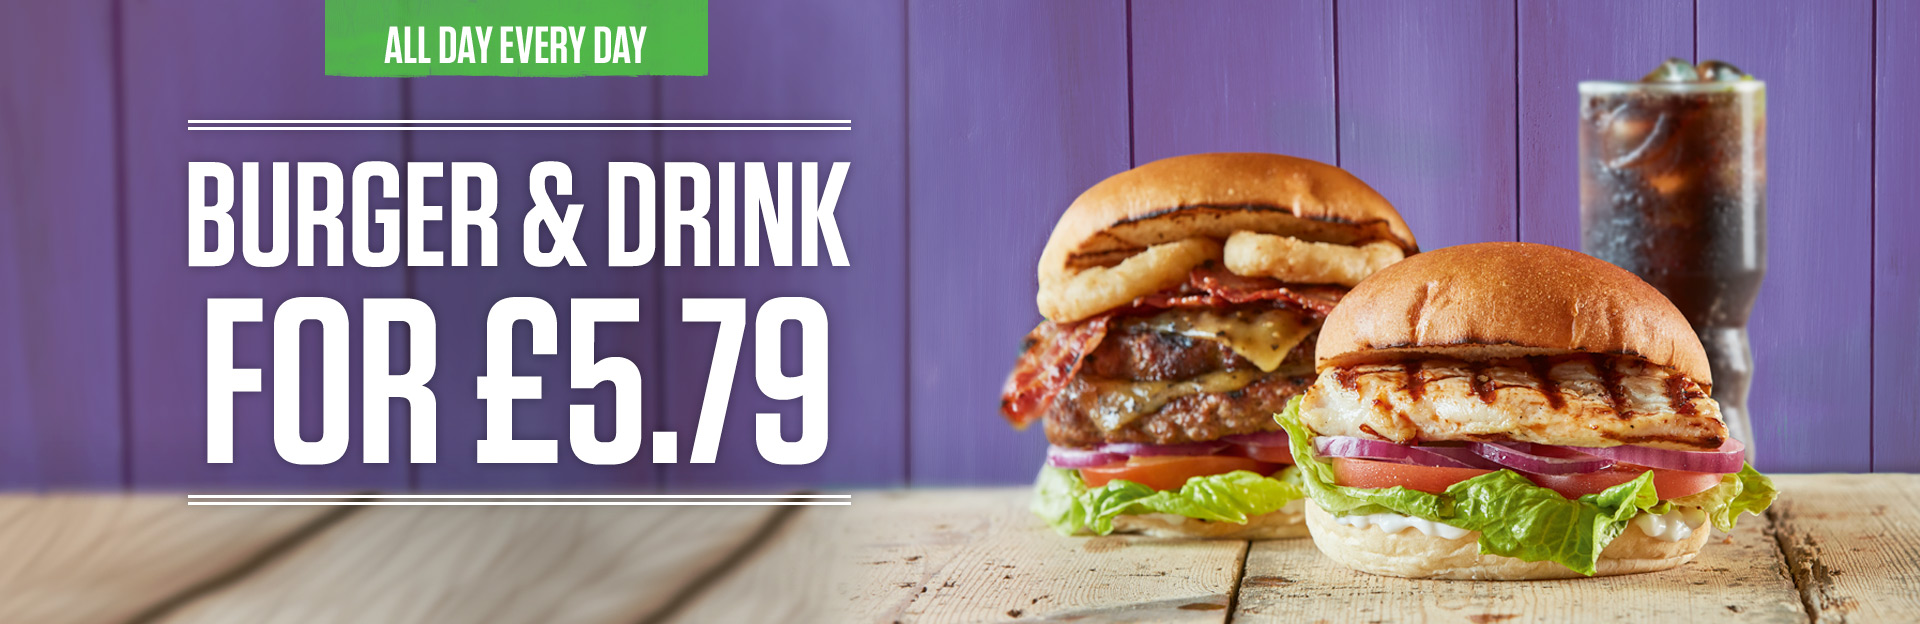 Burger and Drink Deal at The Devonshire Arms